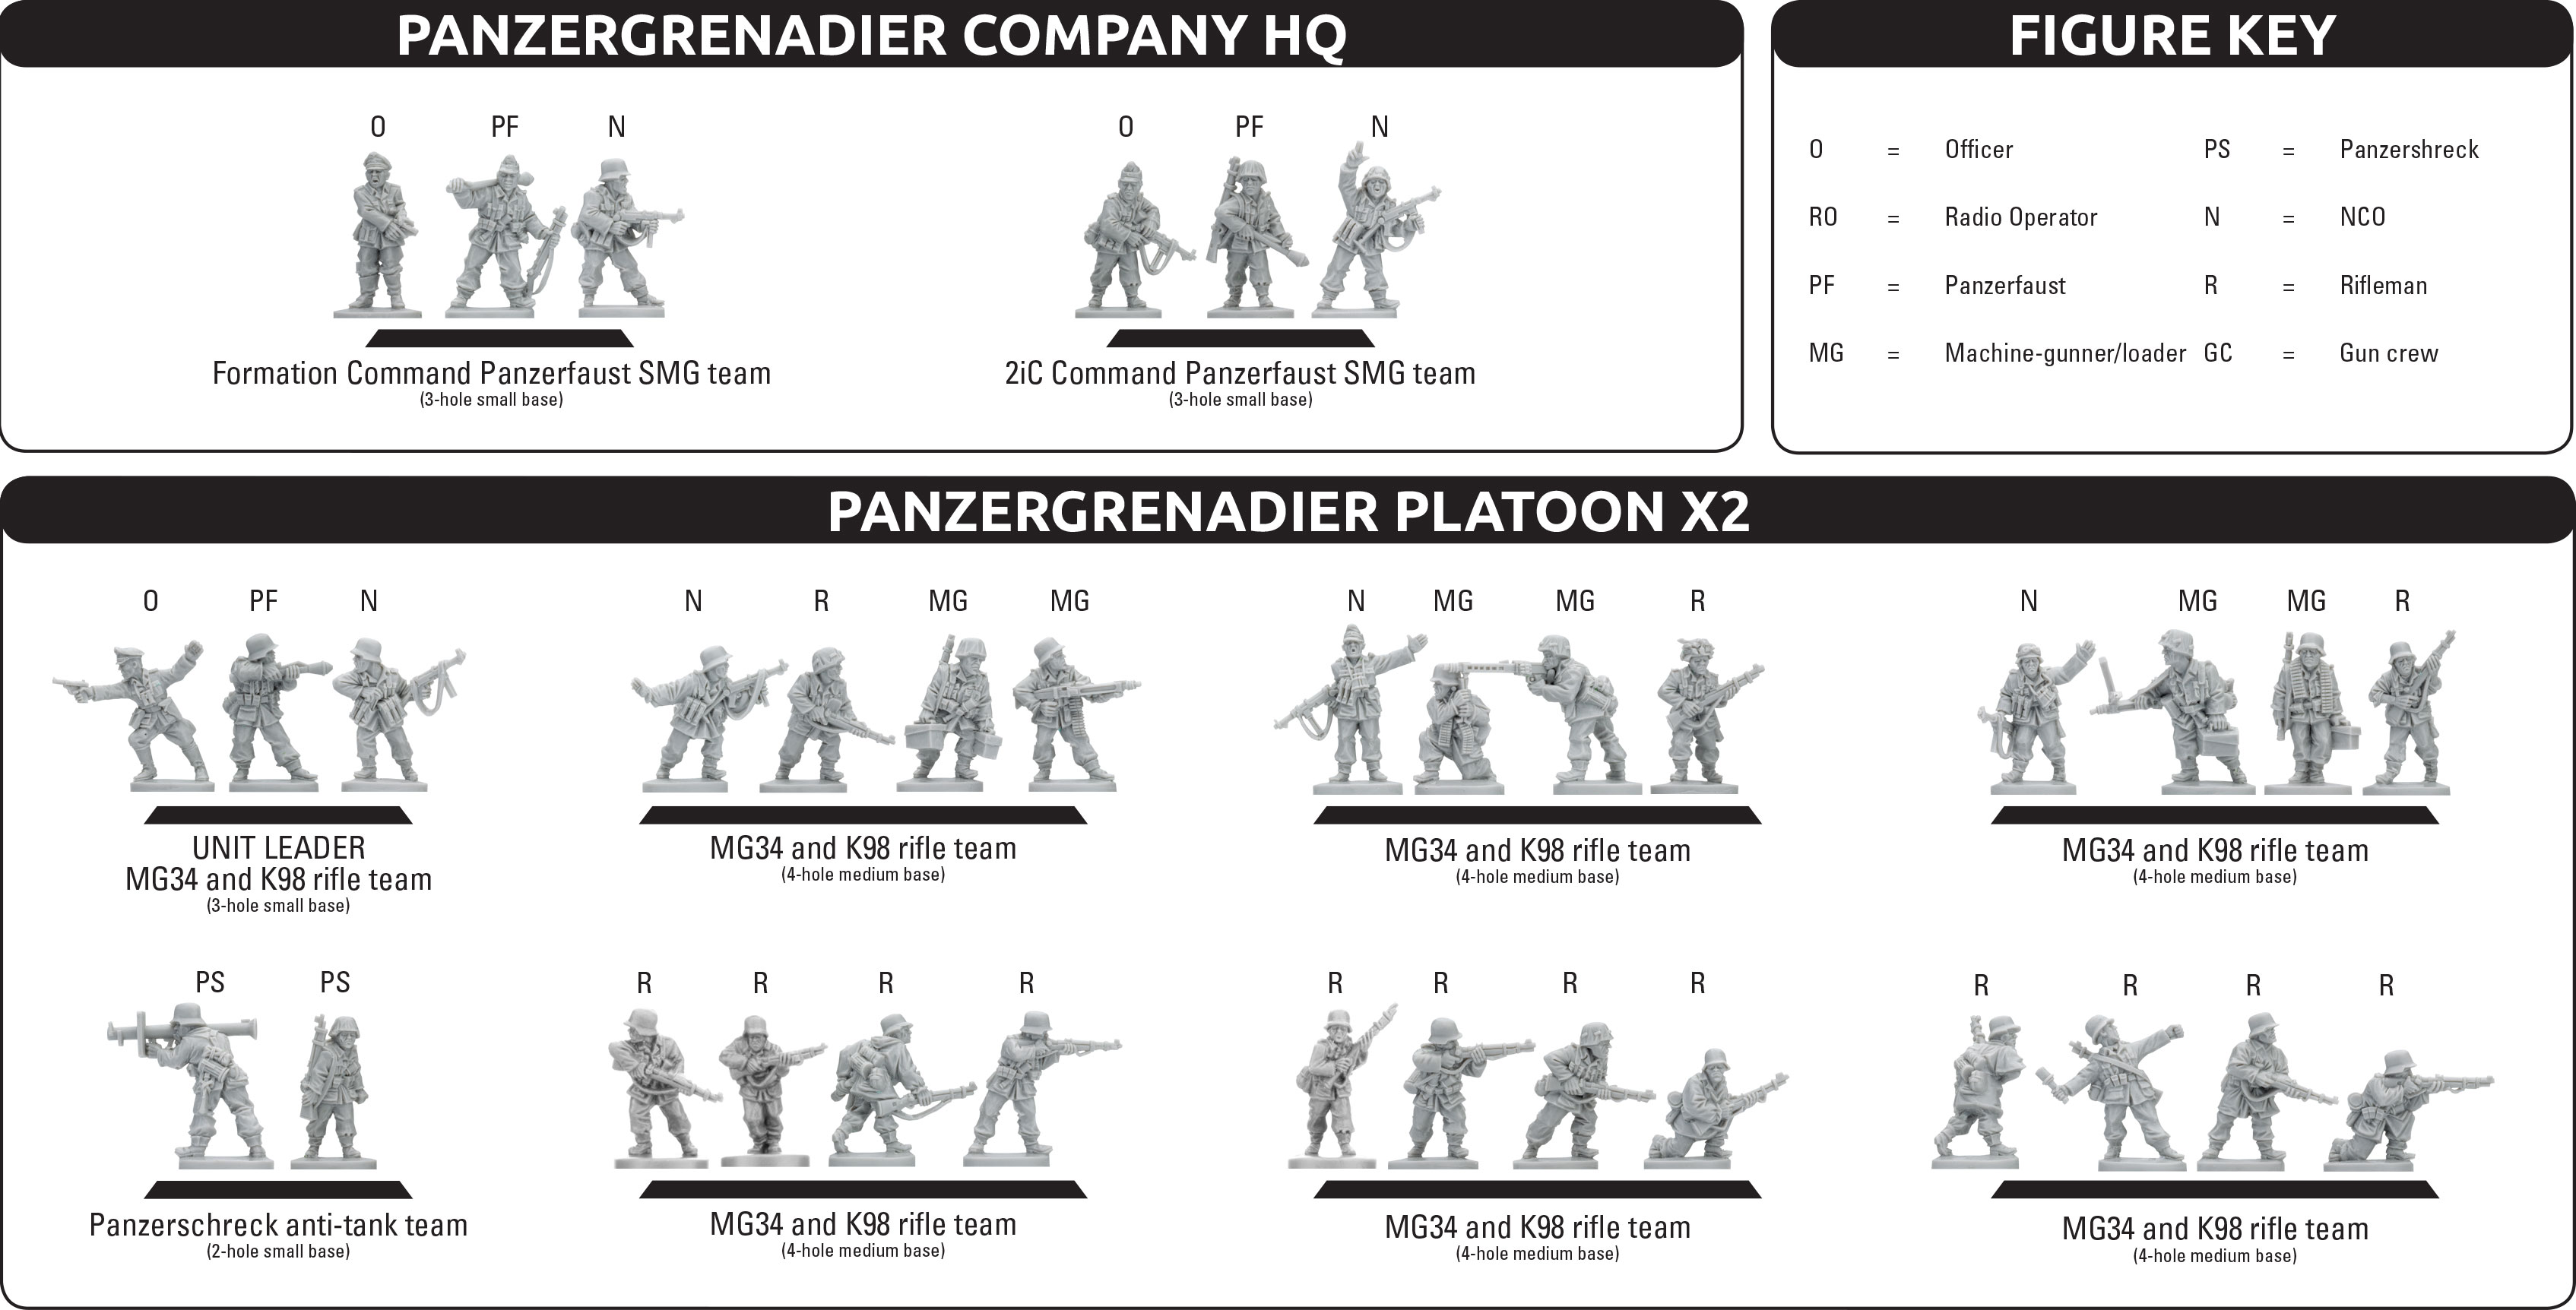 Assembling the Panzergrenadiers